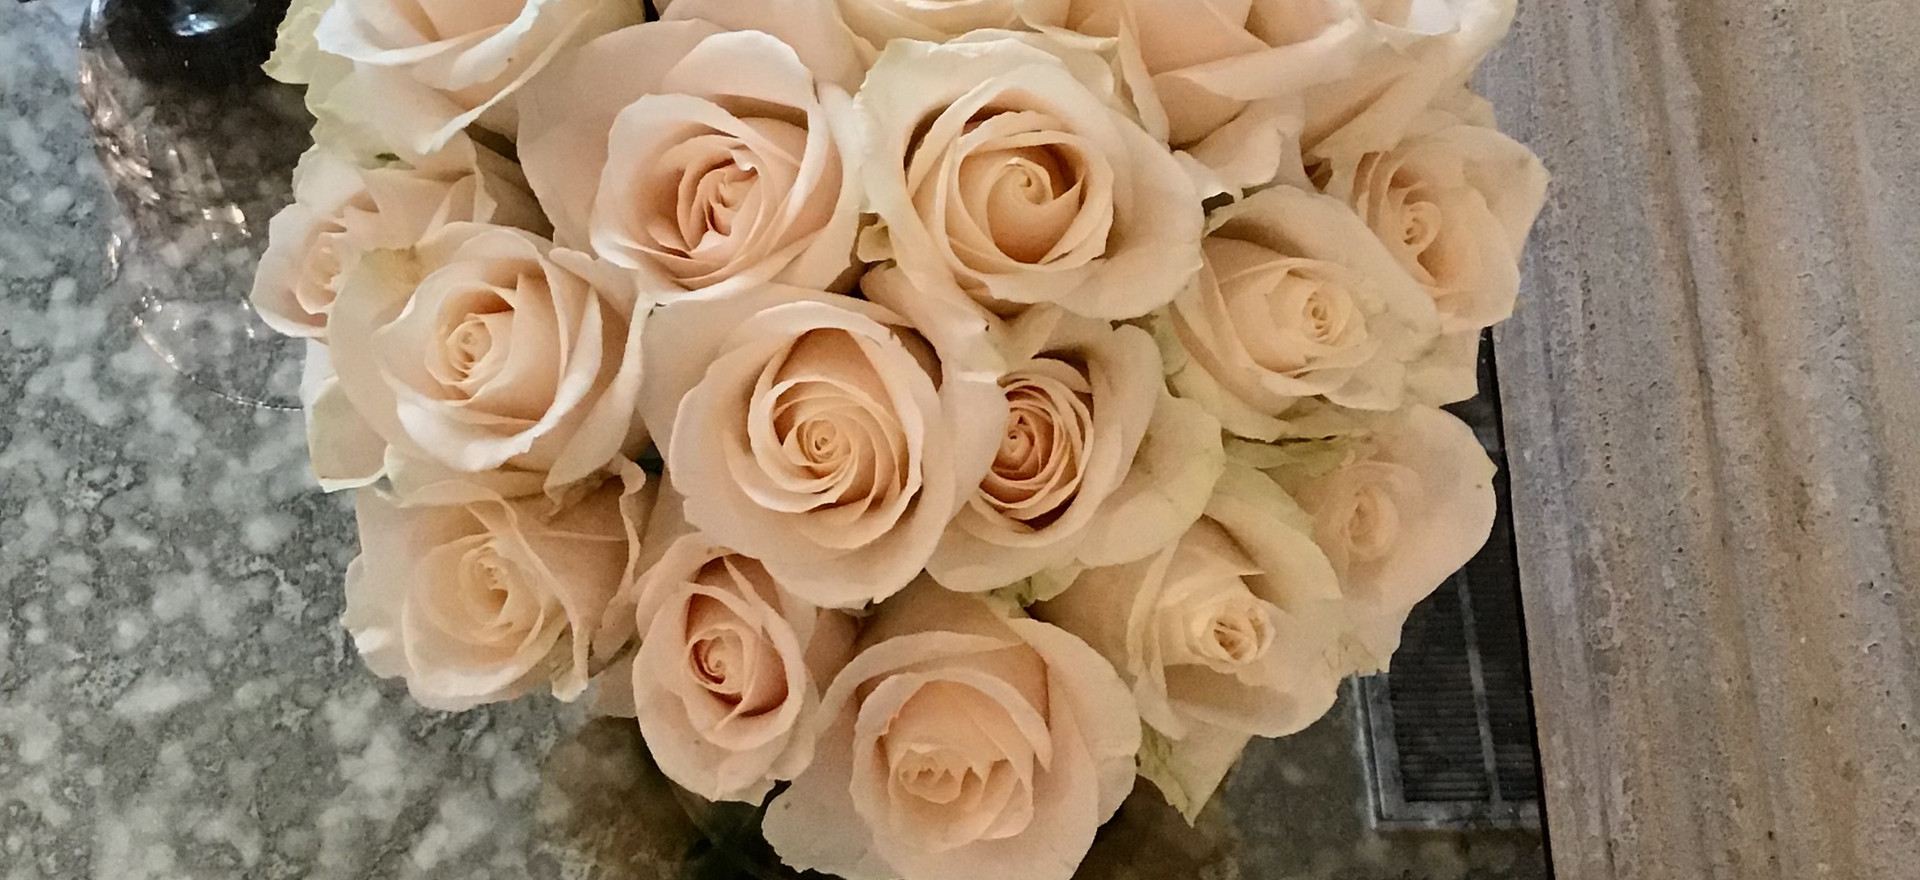 savannahweddingrosebouquet (2).jpg